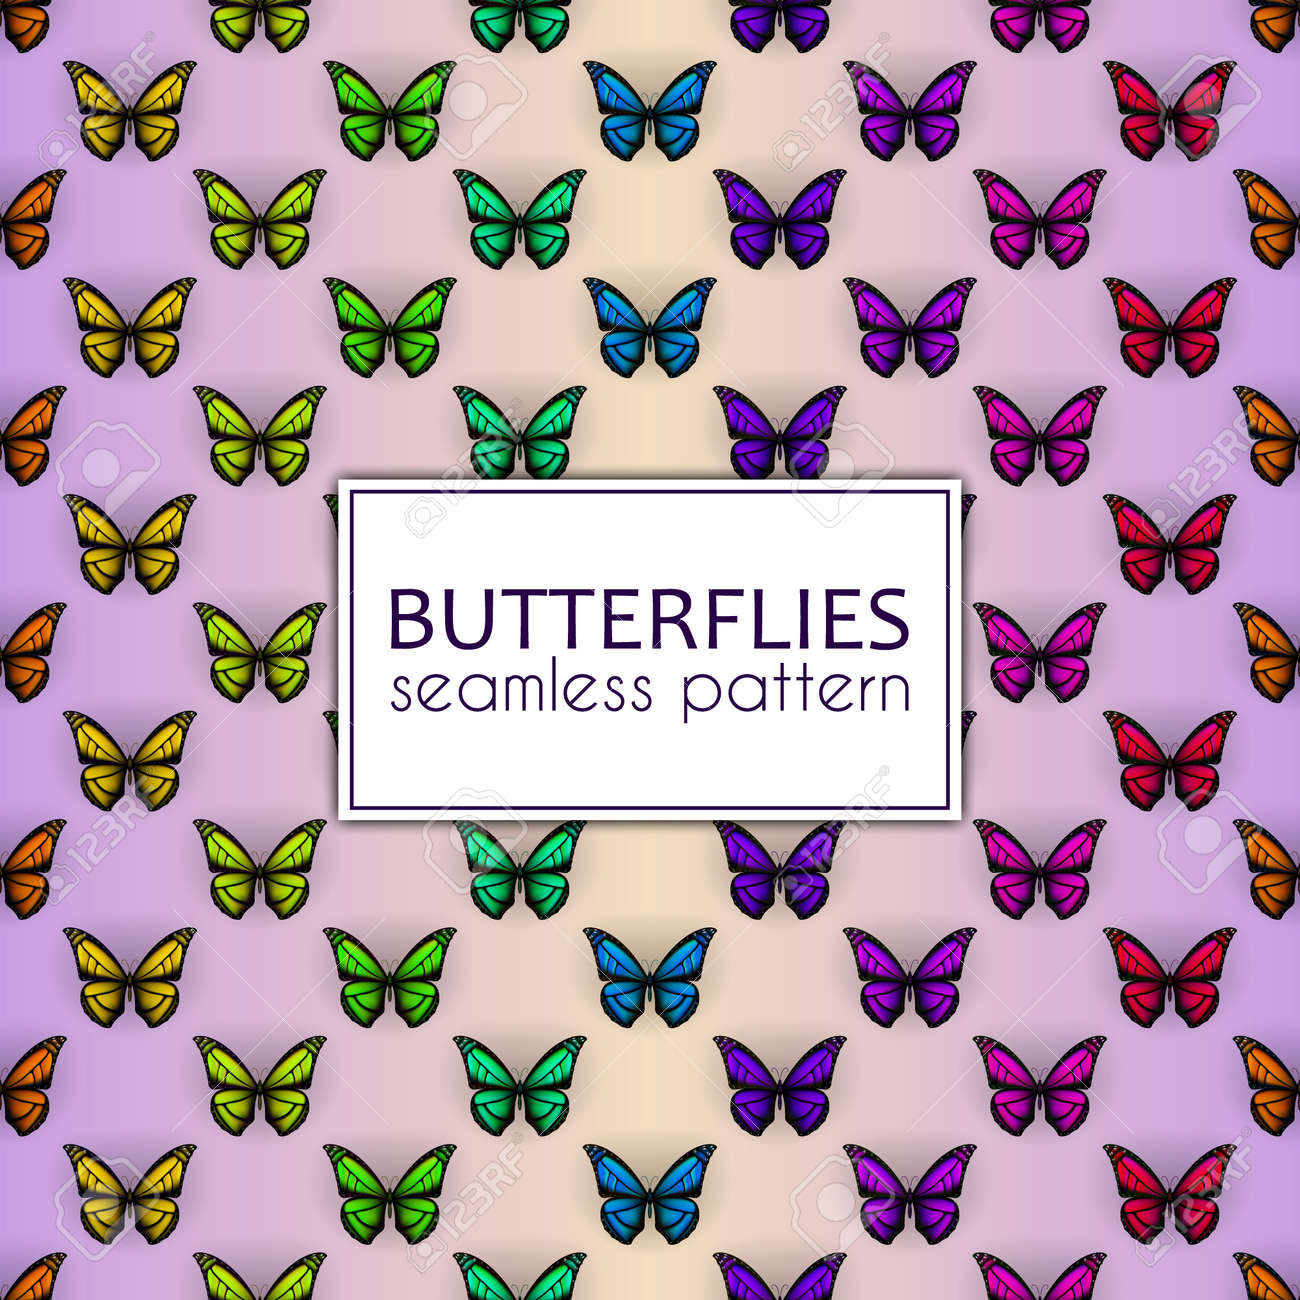 Colorful realistic butterflies seamless pattern. Vector illustration design - 114806839